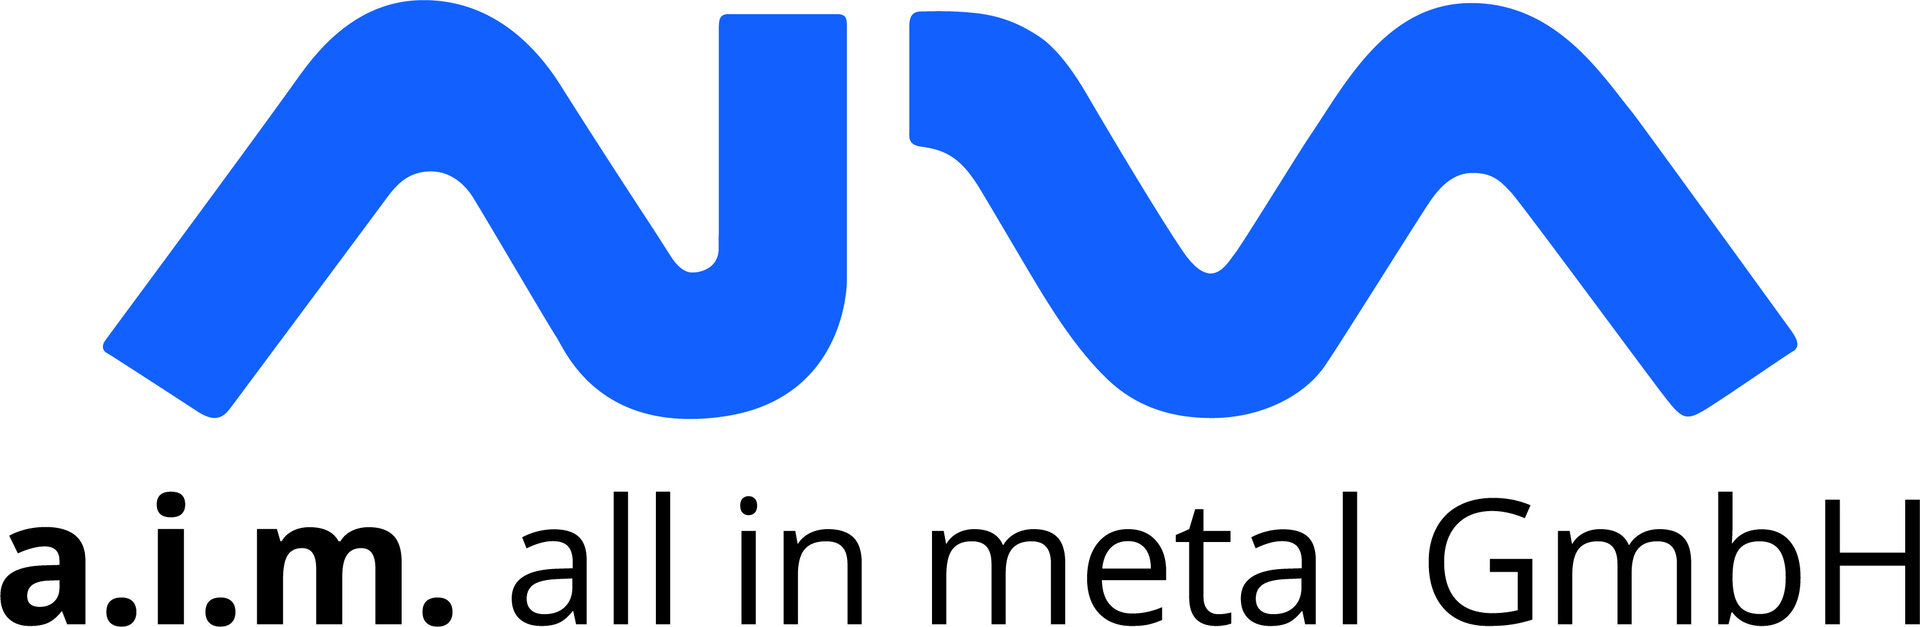 a.i.m. all in metal GmbH